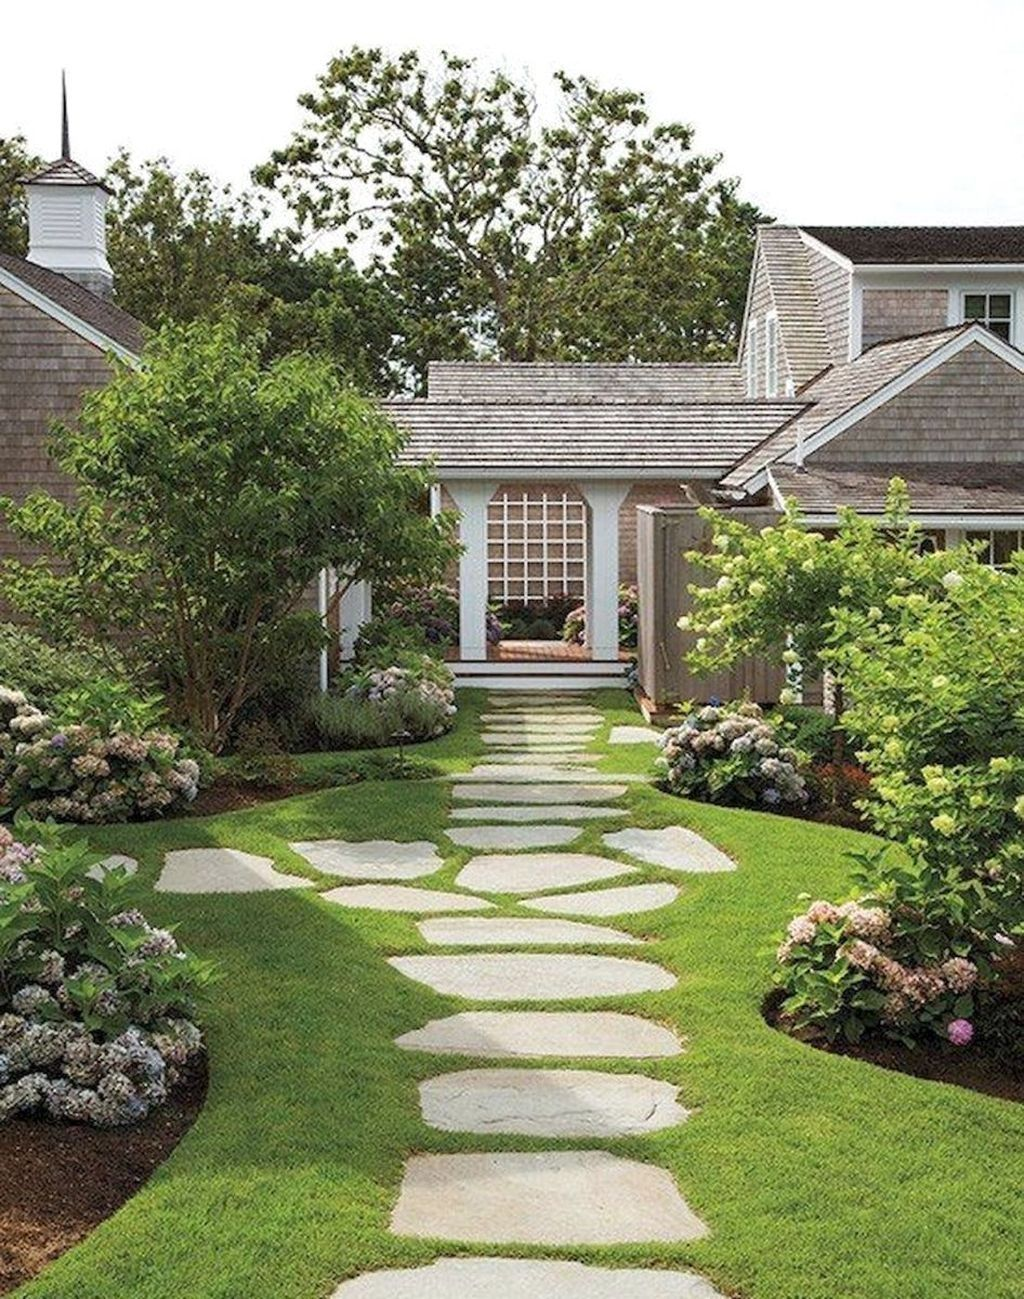 Stunning Stepping Stones Pathway Design Ideas 15